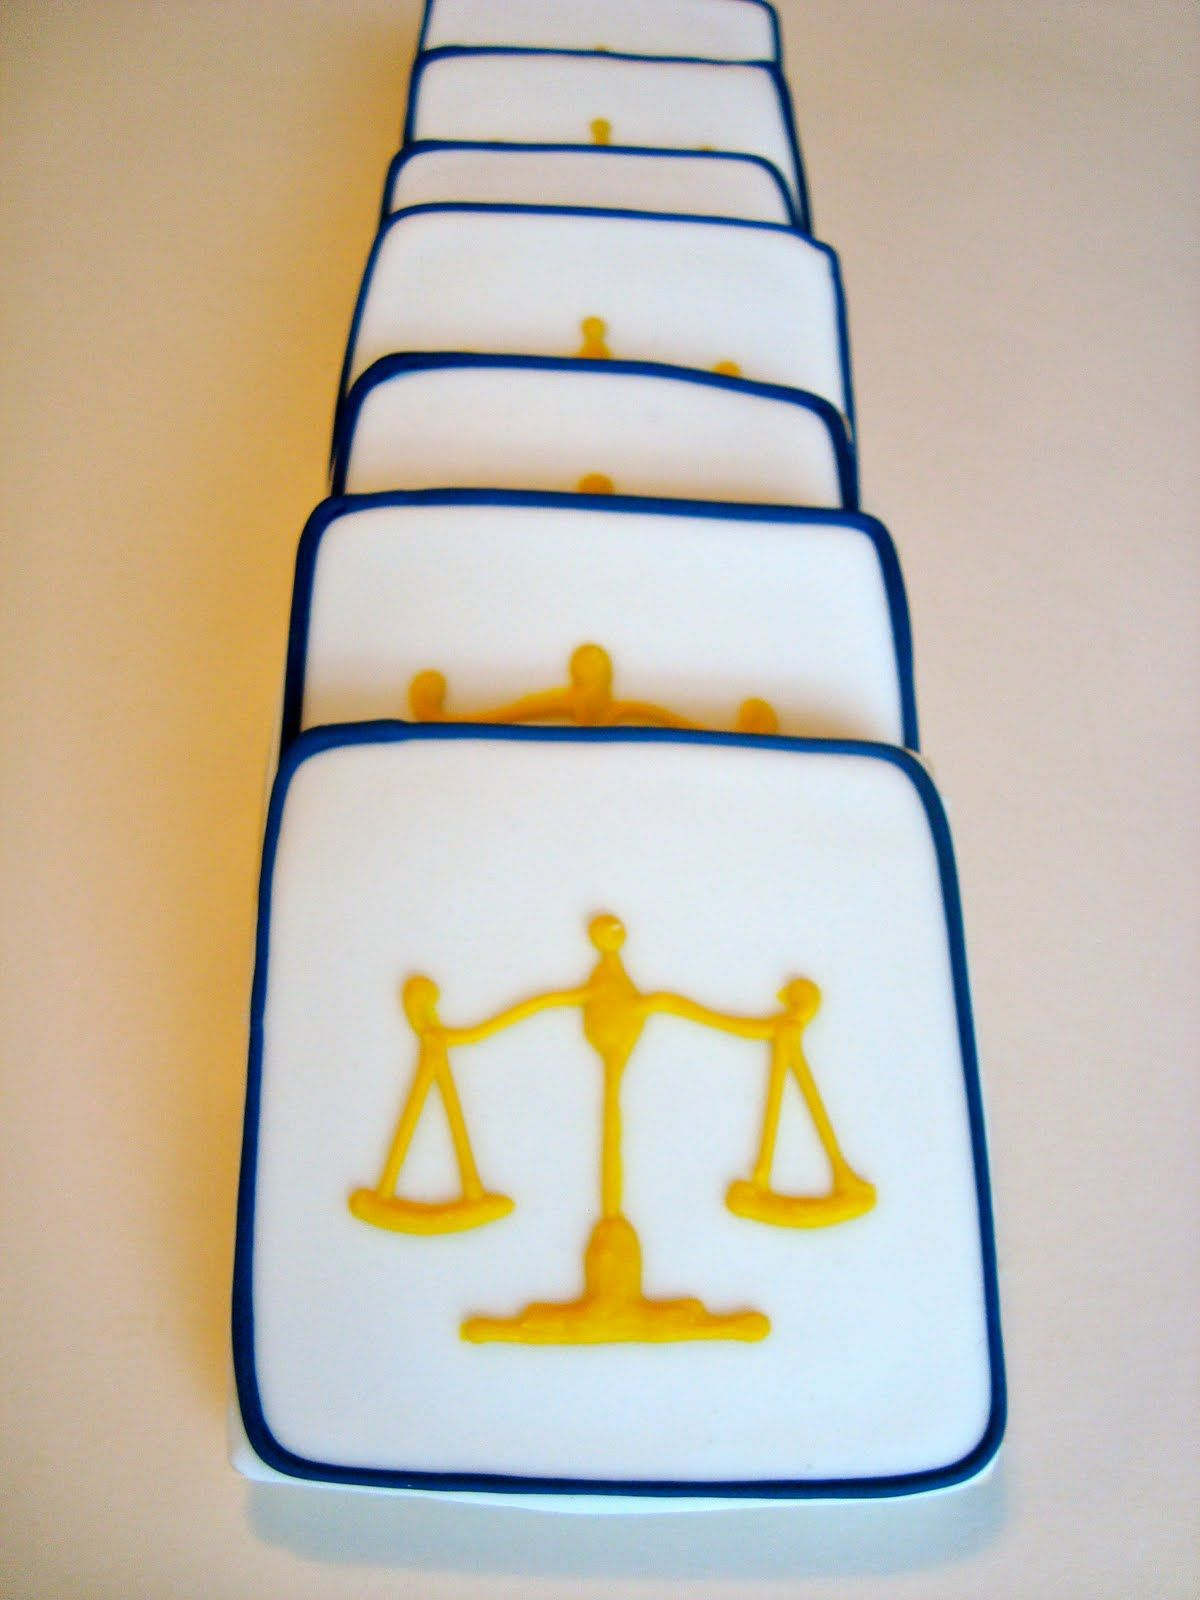 These Graduation Cookies Were Done For My Brother In Law Who Just Graduated From George Washington Law School Graduation Party Law School Graduation Law School